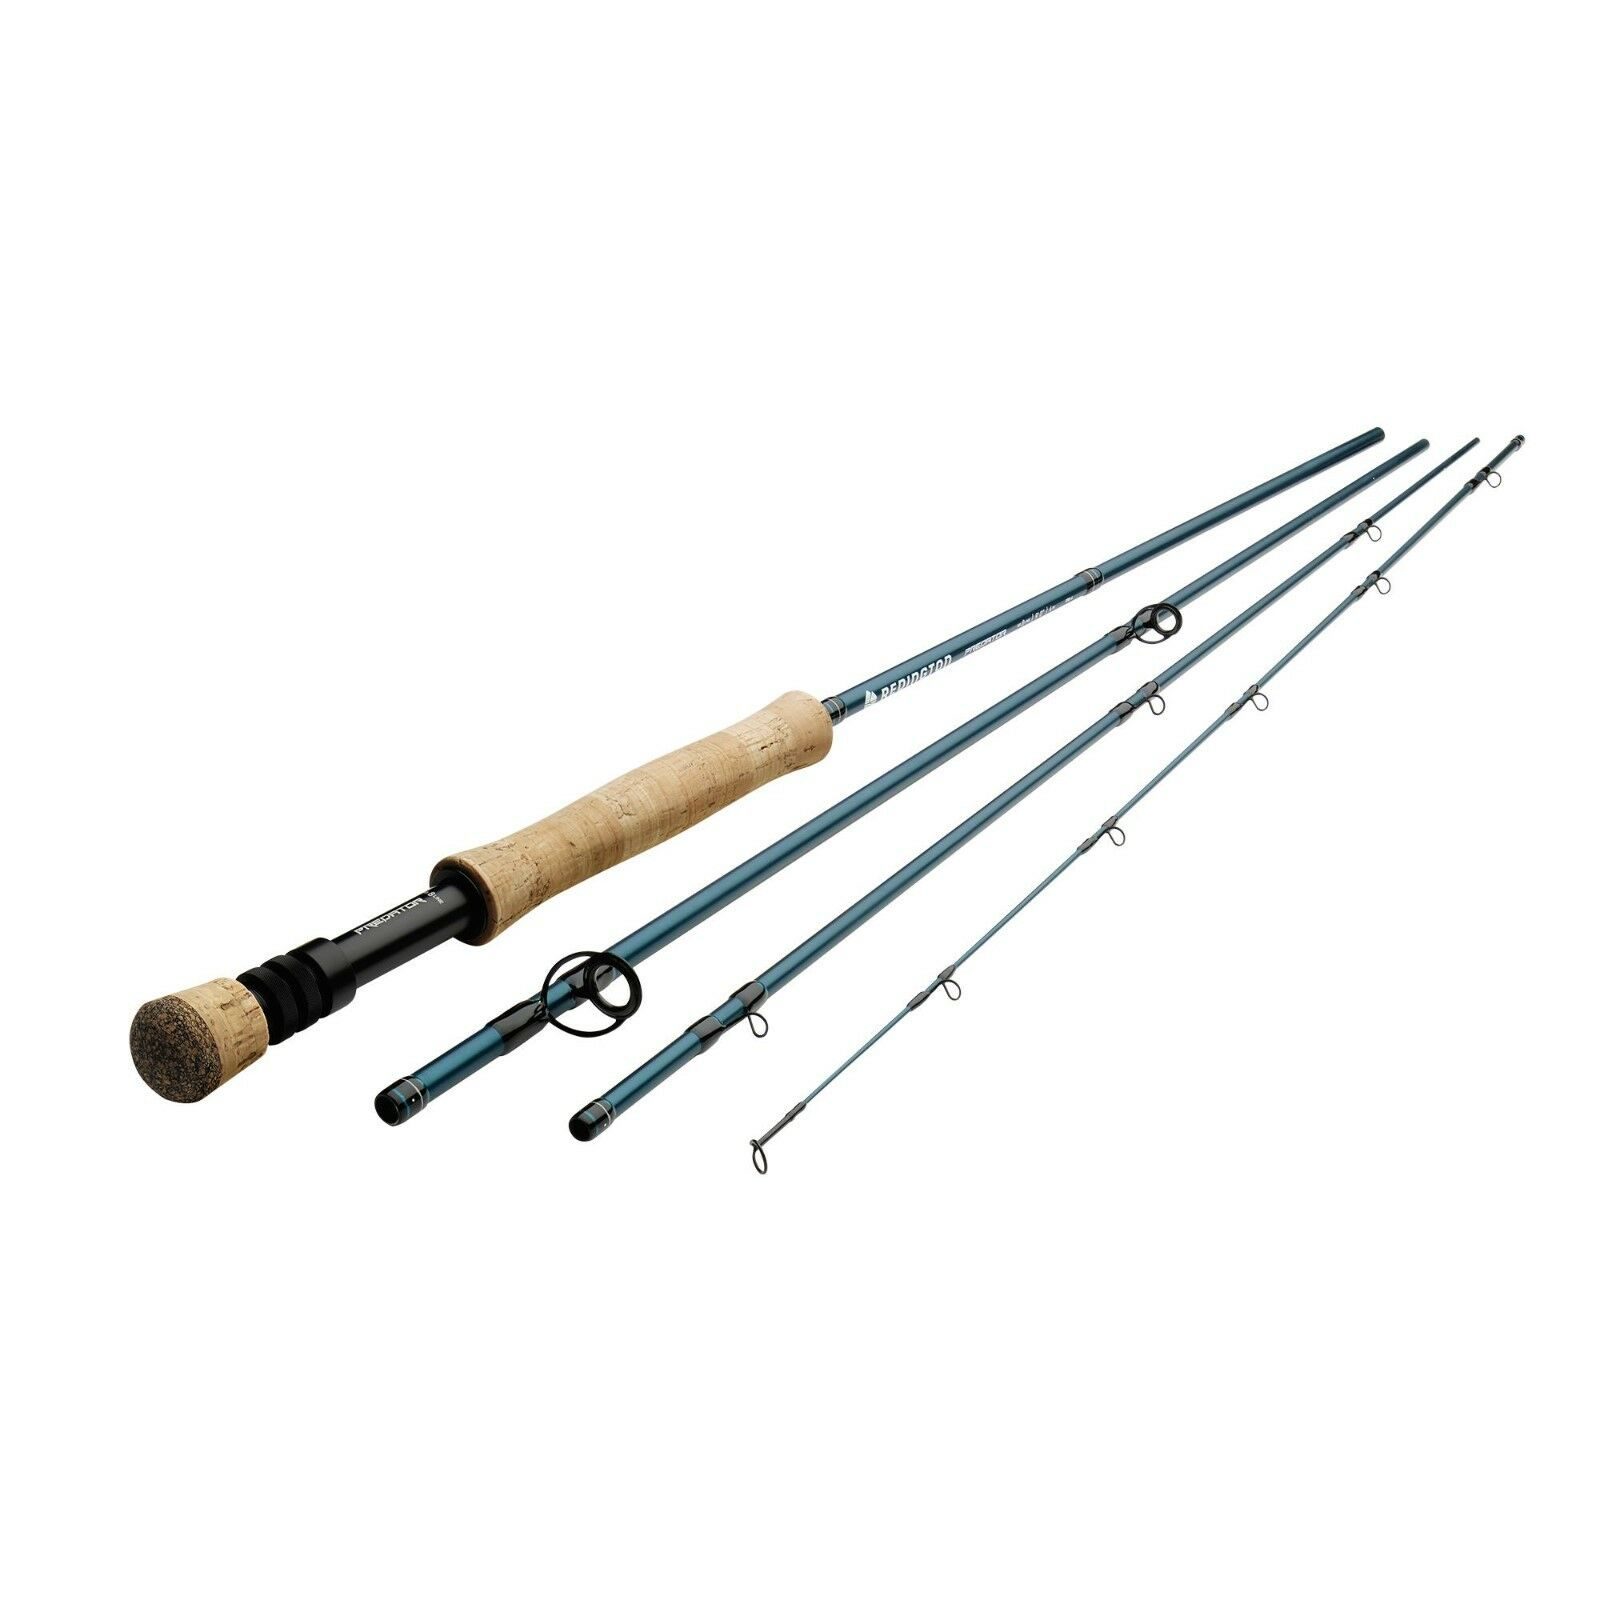 NEW REDINGTON PREDATOR 990-4 SALTWATER  FRESHWATER 9' WEIGHT FLY FISHING ROD